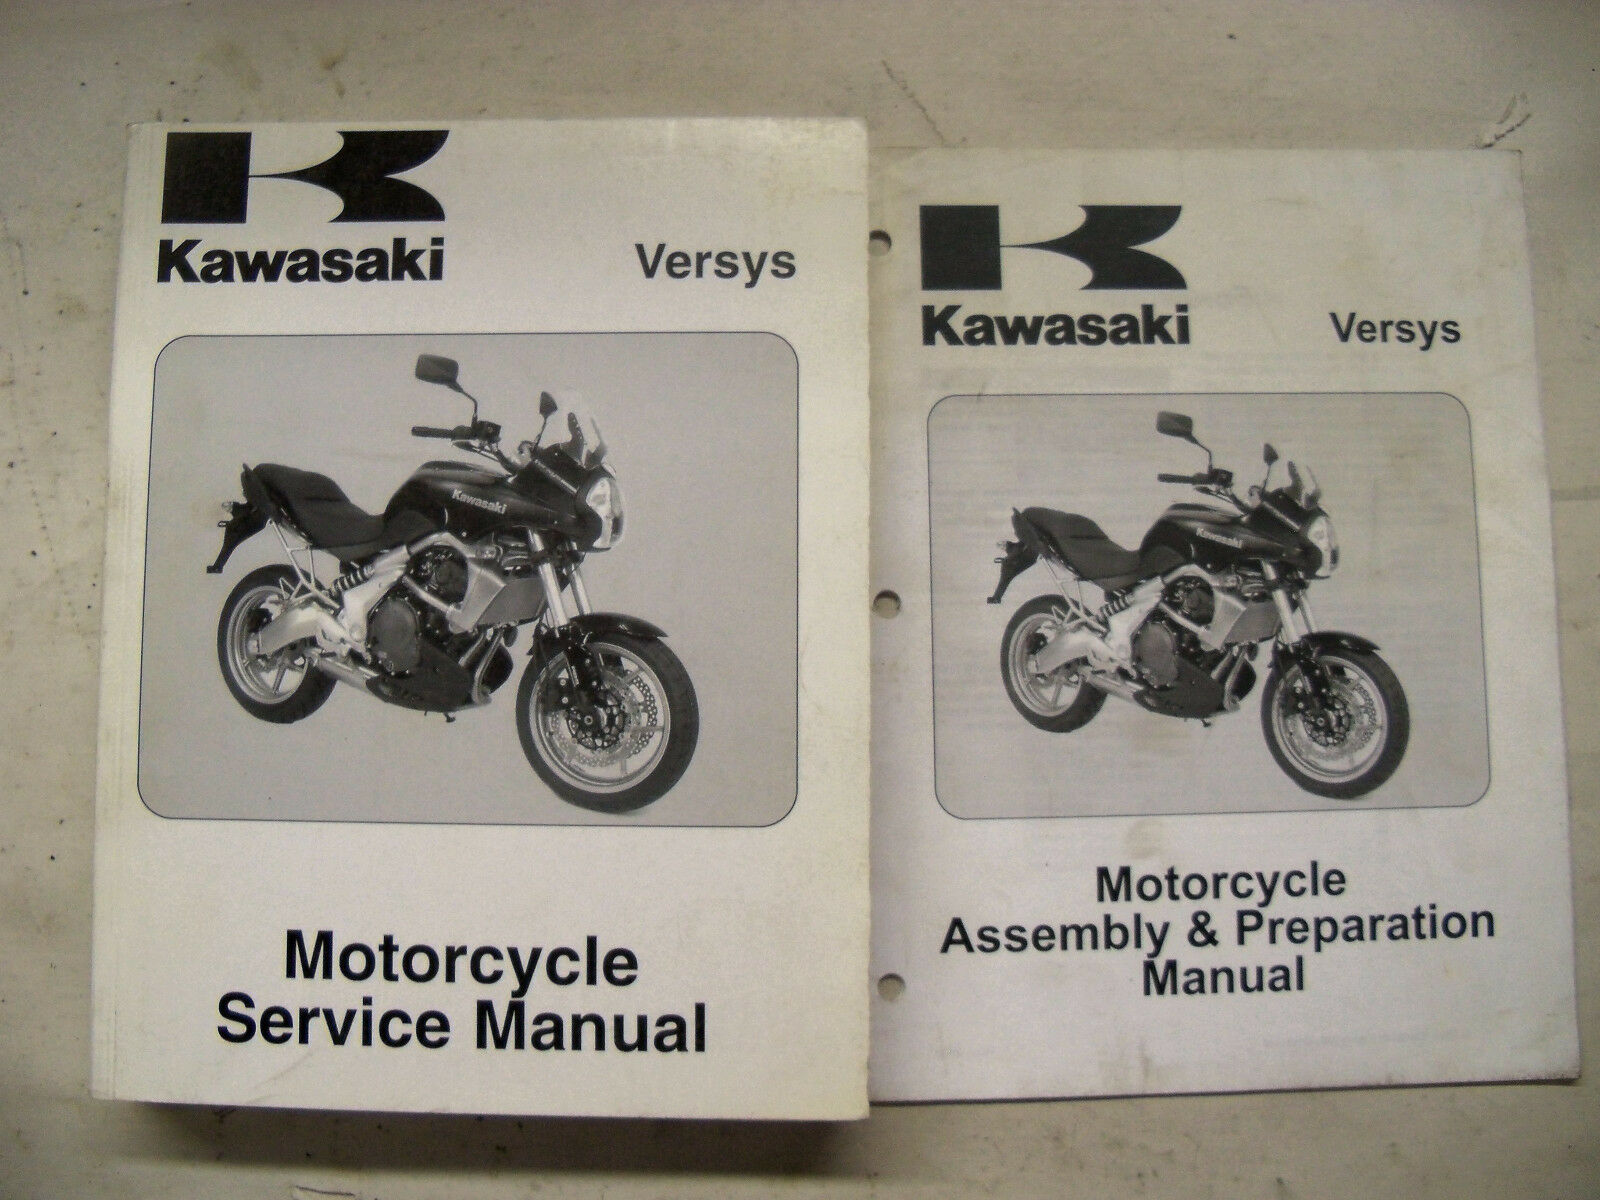 2007 2008 Kawasaki Versys Service Shop Manual Set 99924-1369-31 1 of 4Only 1  available ...